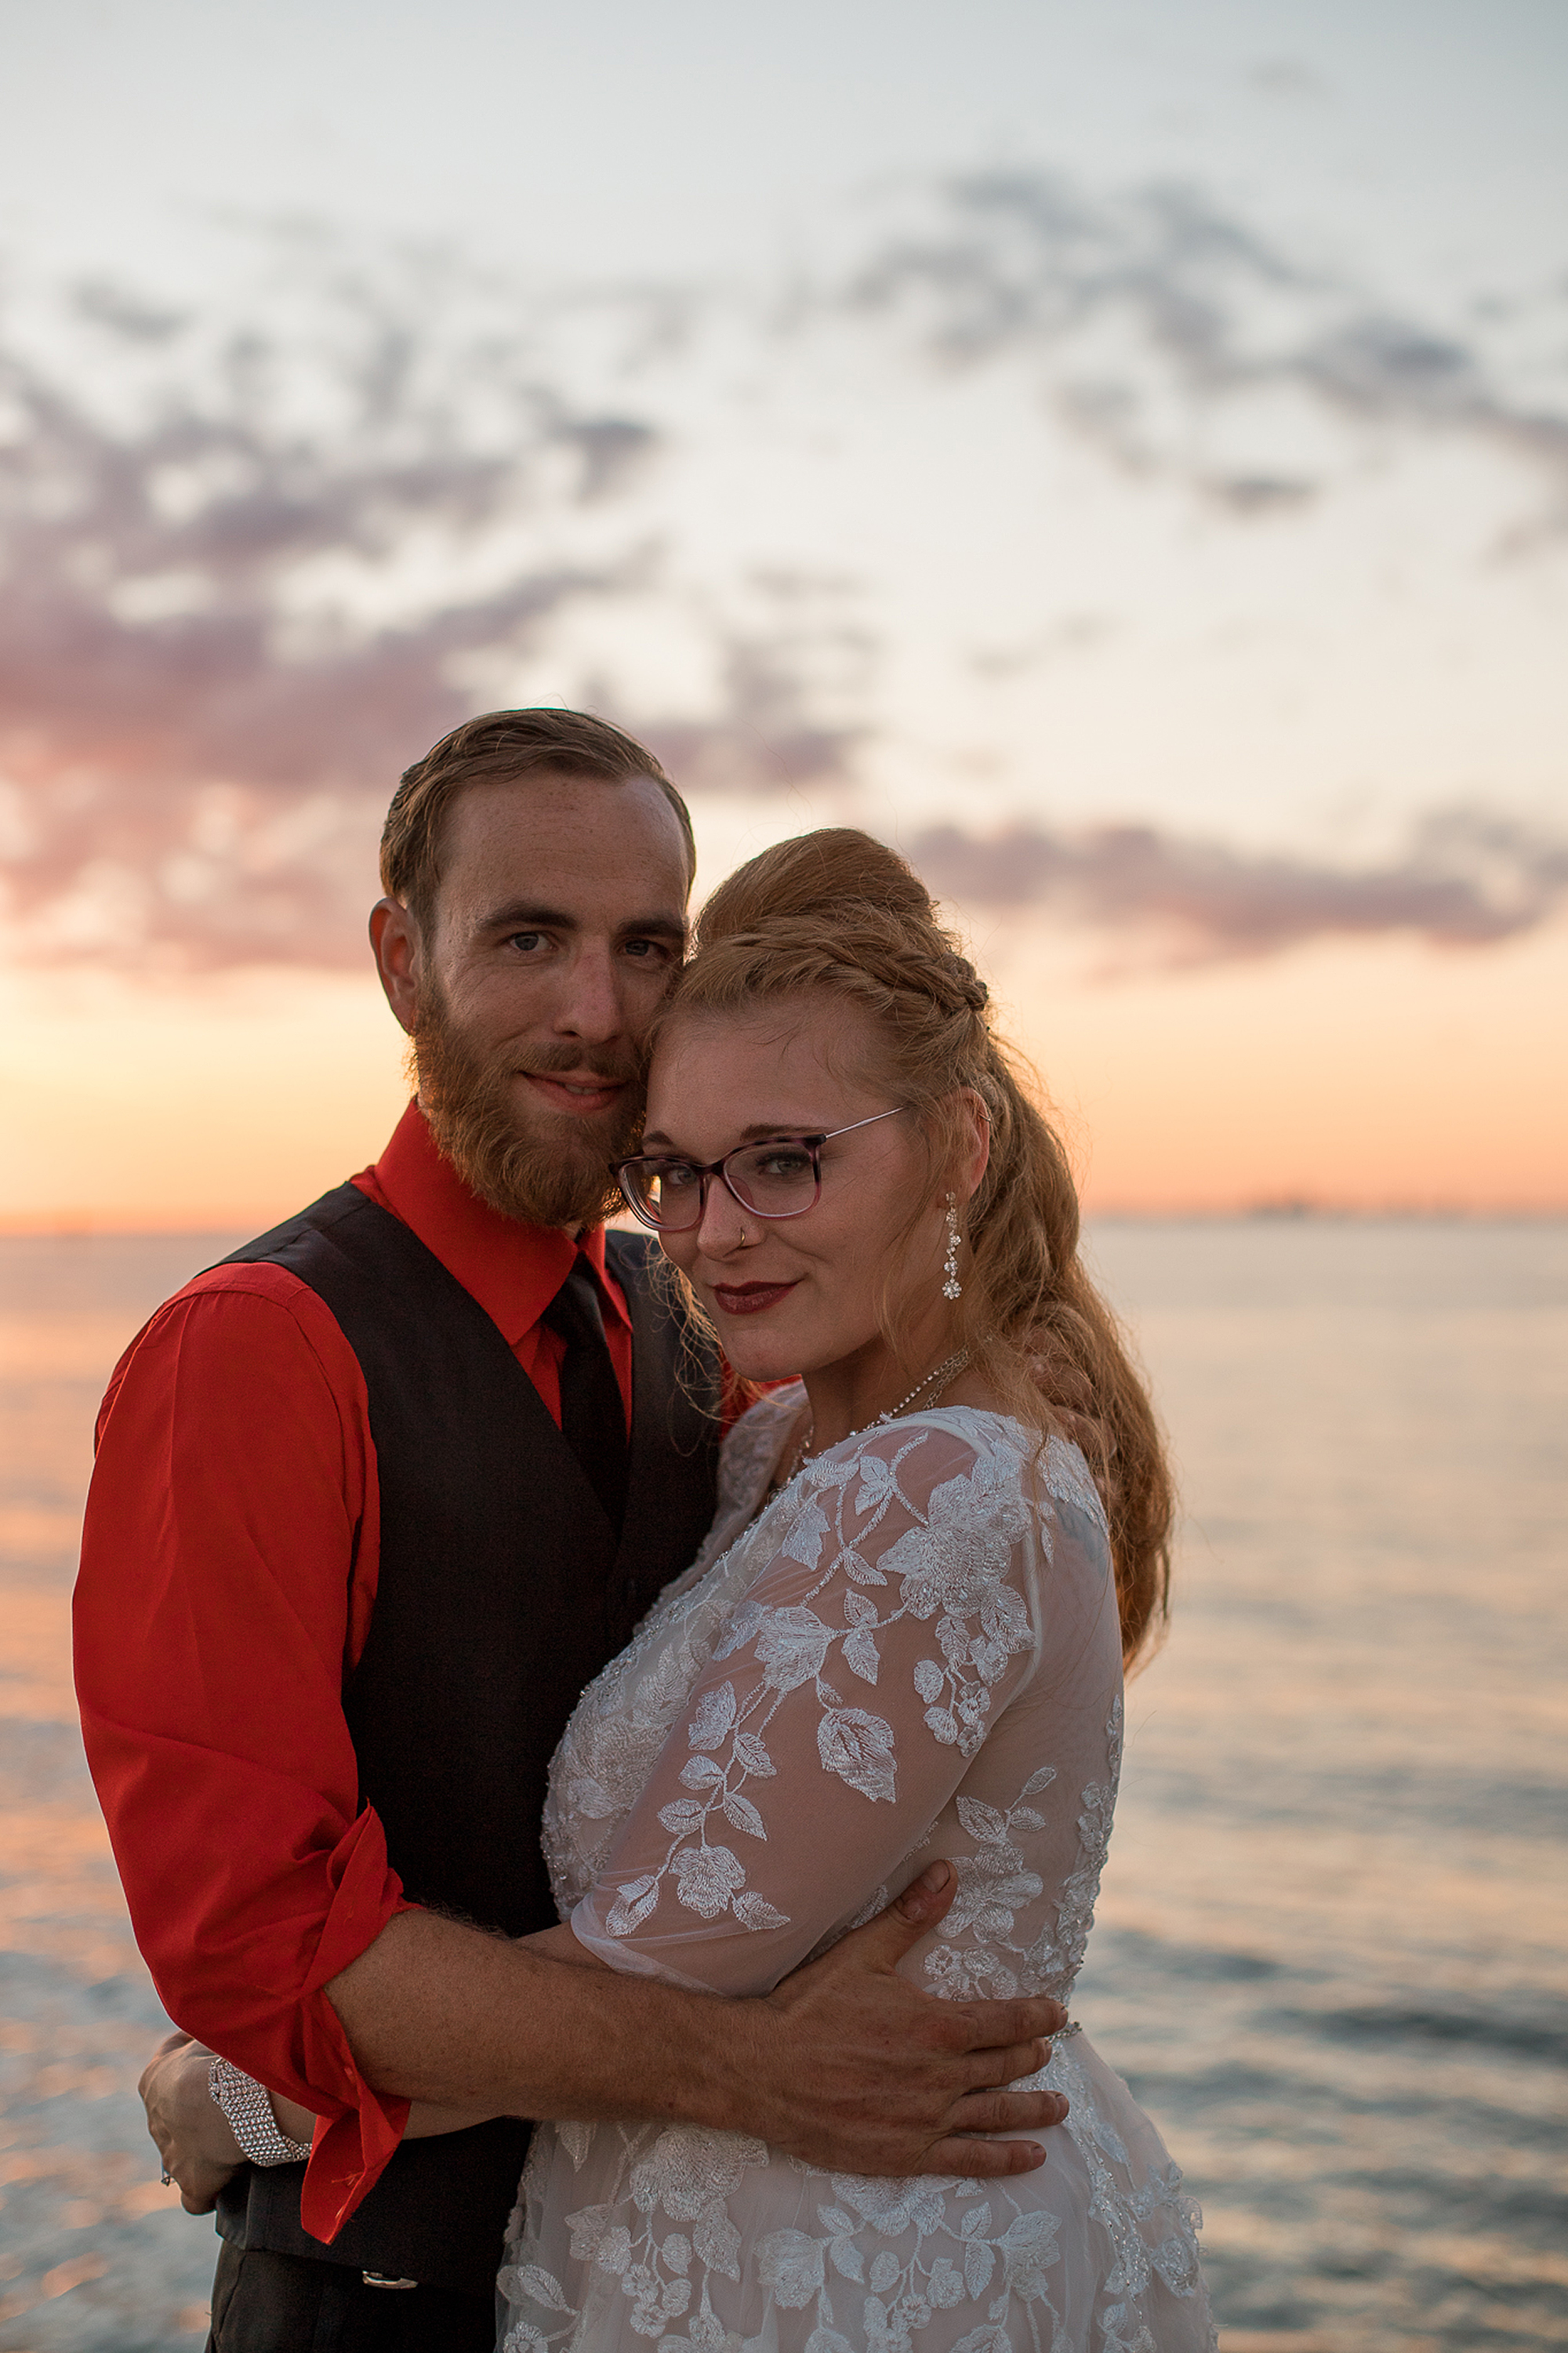 Tampa, FL Wedding 10/13/19